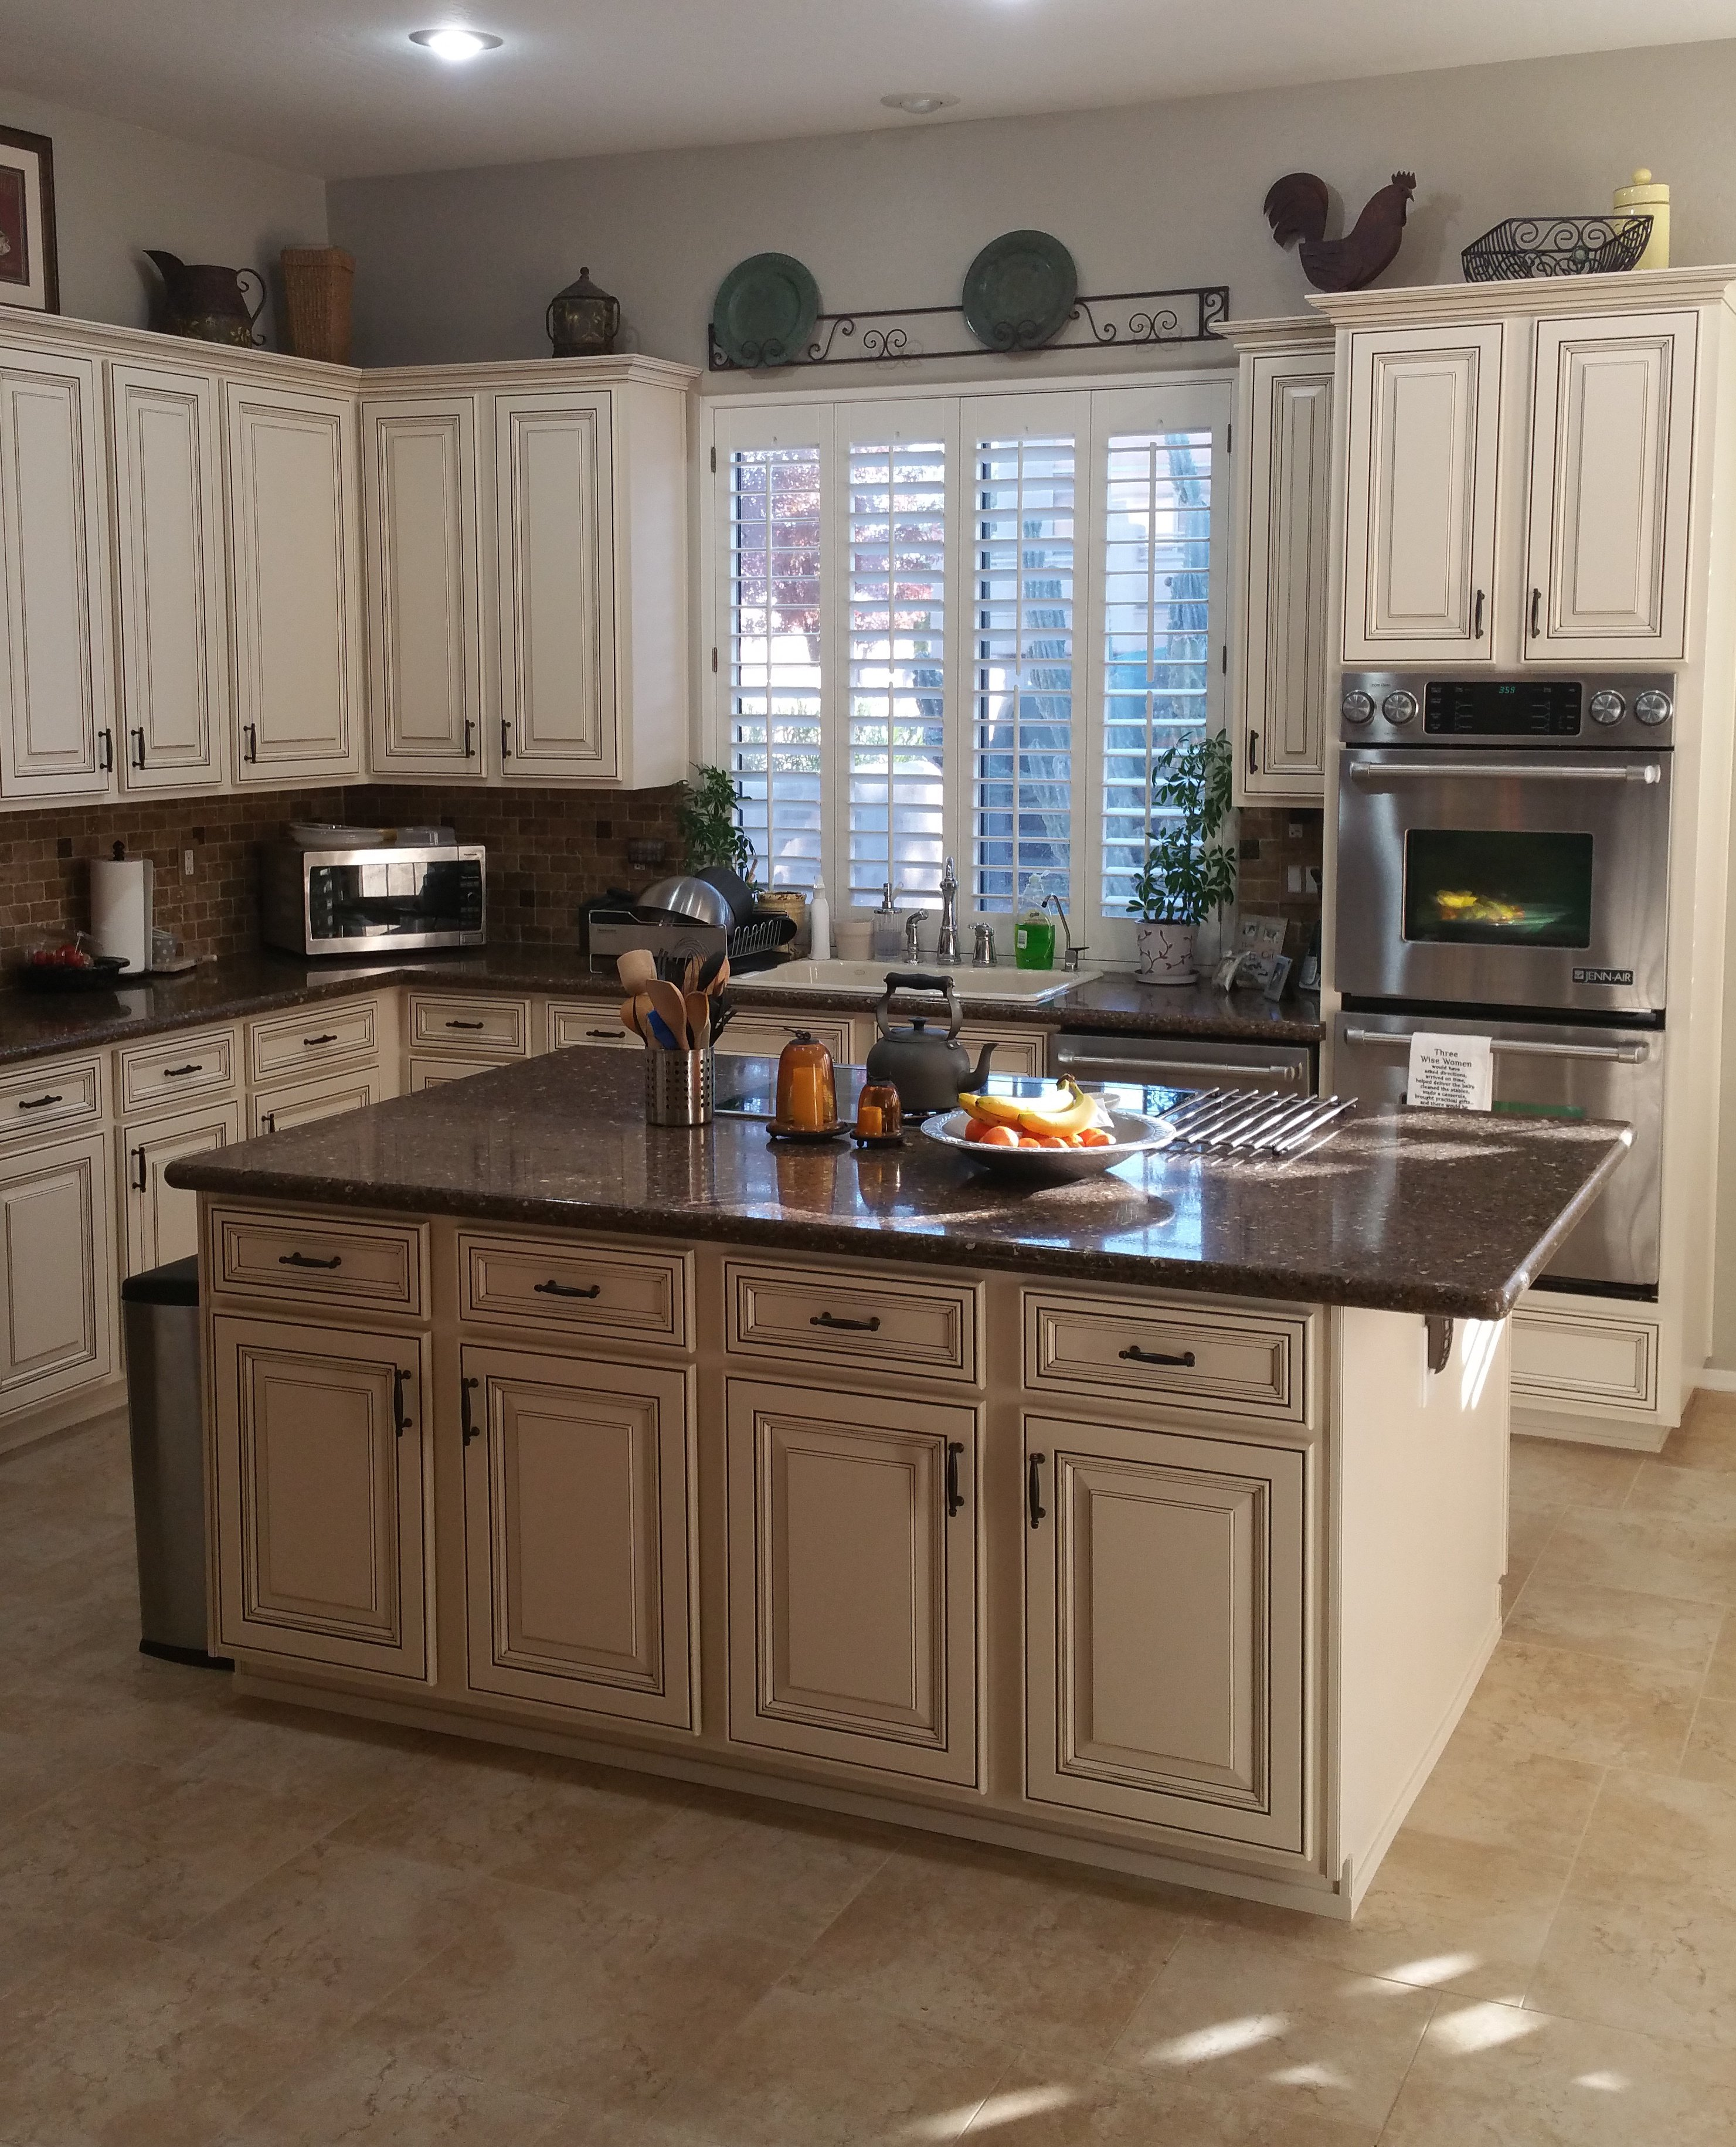 Kitchen Refacing  Refinishing  How to Chose a Company in